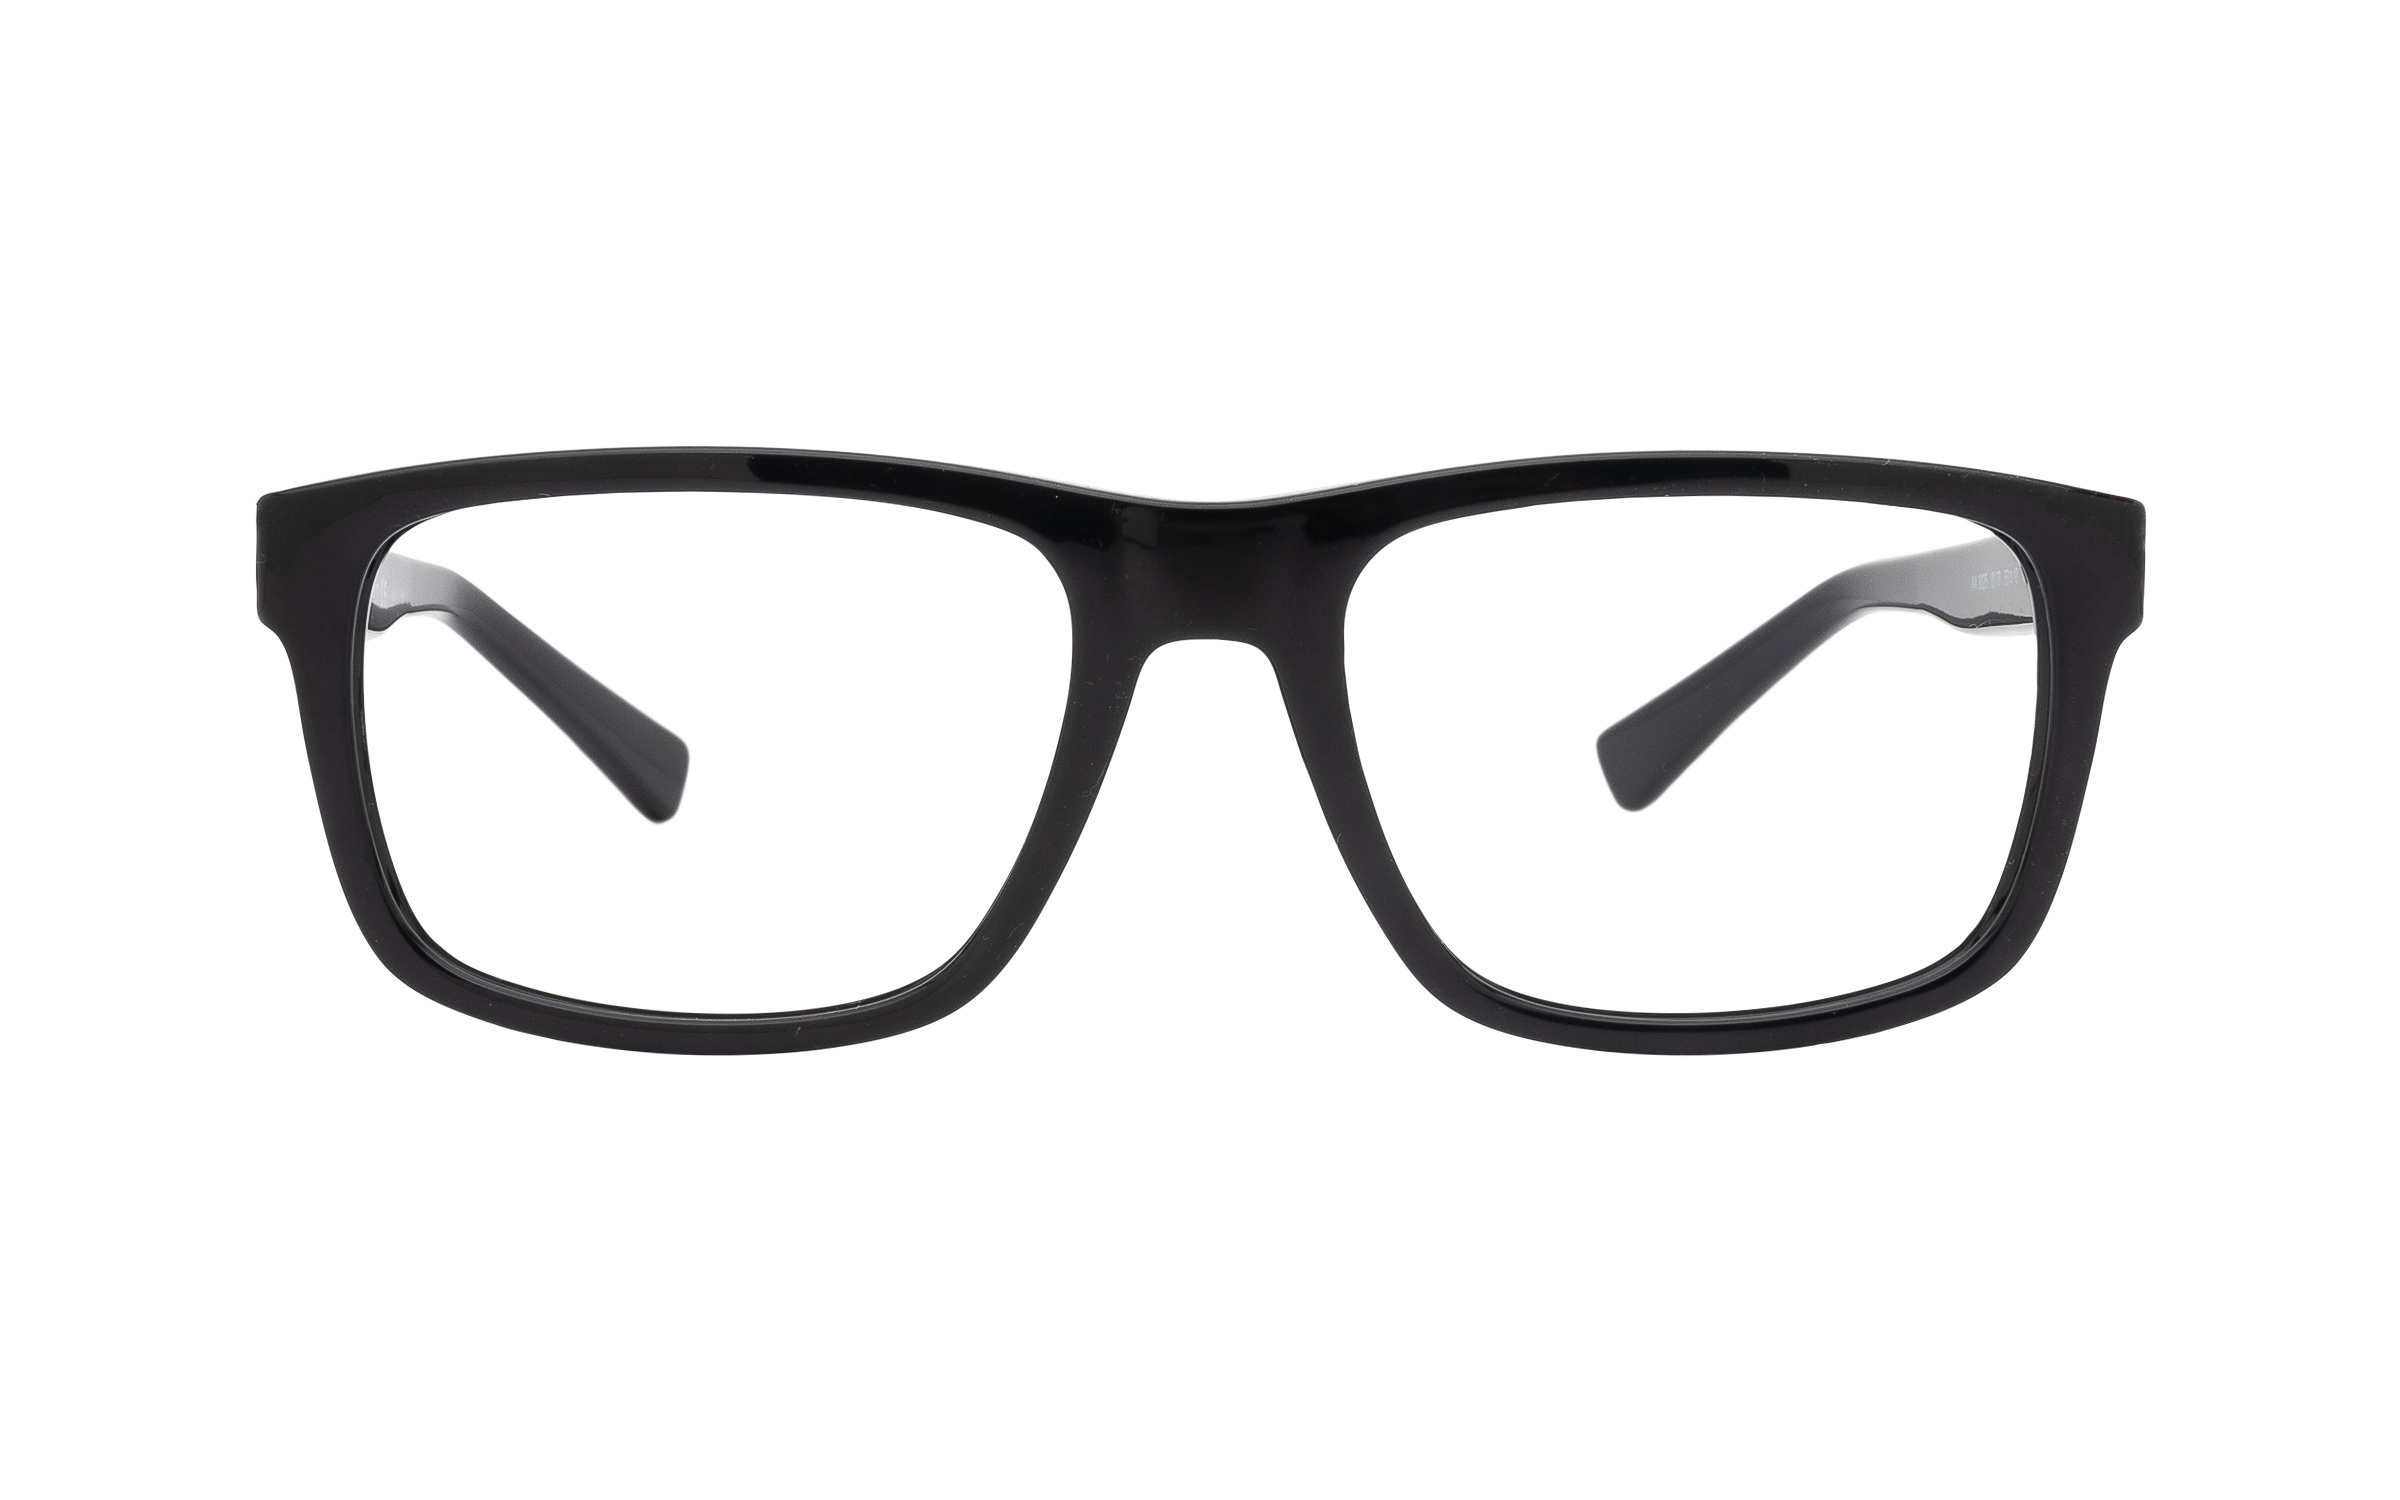 http://www.coastal.com/ - Armani Exchange AX3025 8178 (53) Eyeglasses and Frame in Shiny Black – Online Coastal